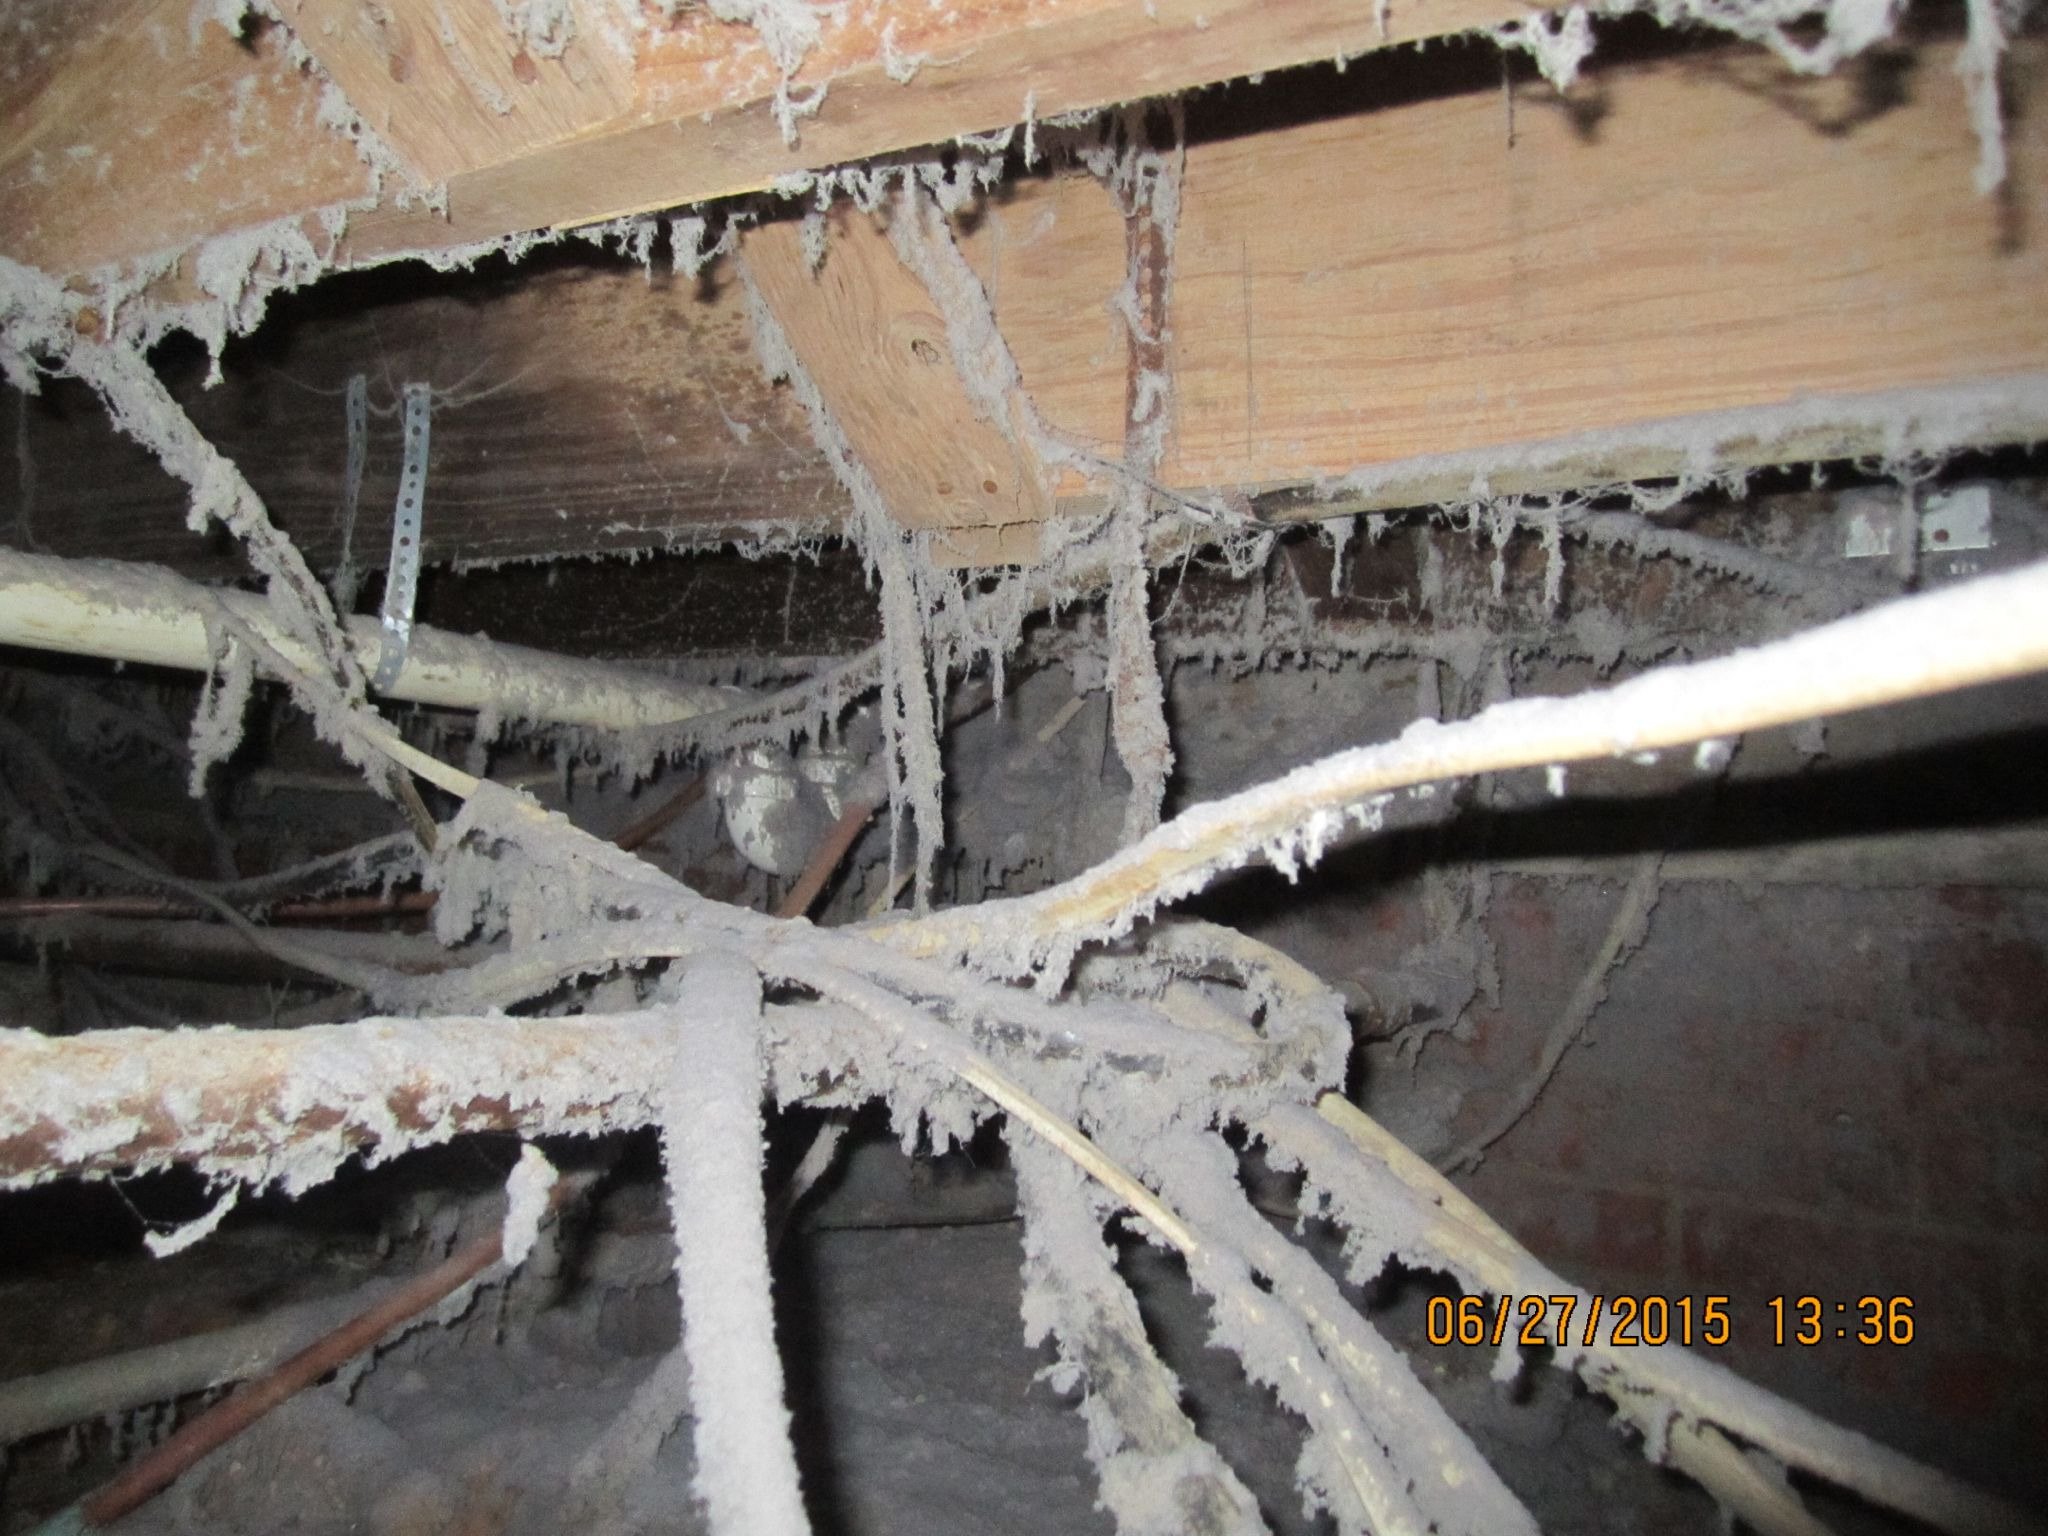 This Is A Picture Of A Crawl Space Of A Pier And Beam Foundation With The Dryer Vent Terminating Under The House Pier And Beam Foundation House Exterior Beams